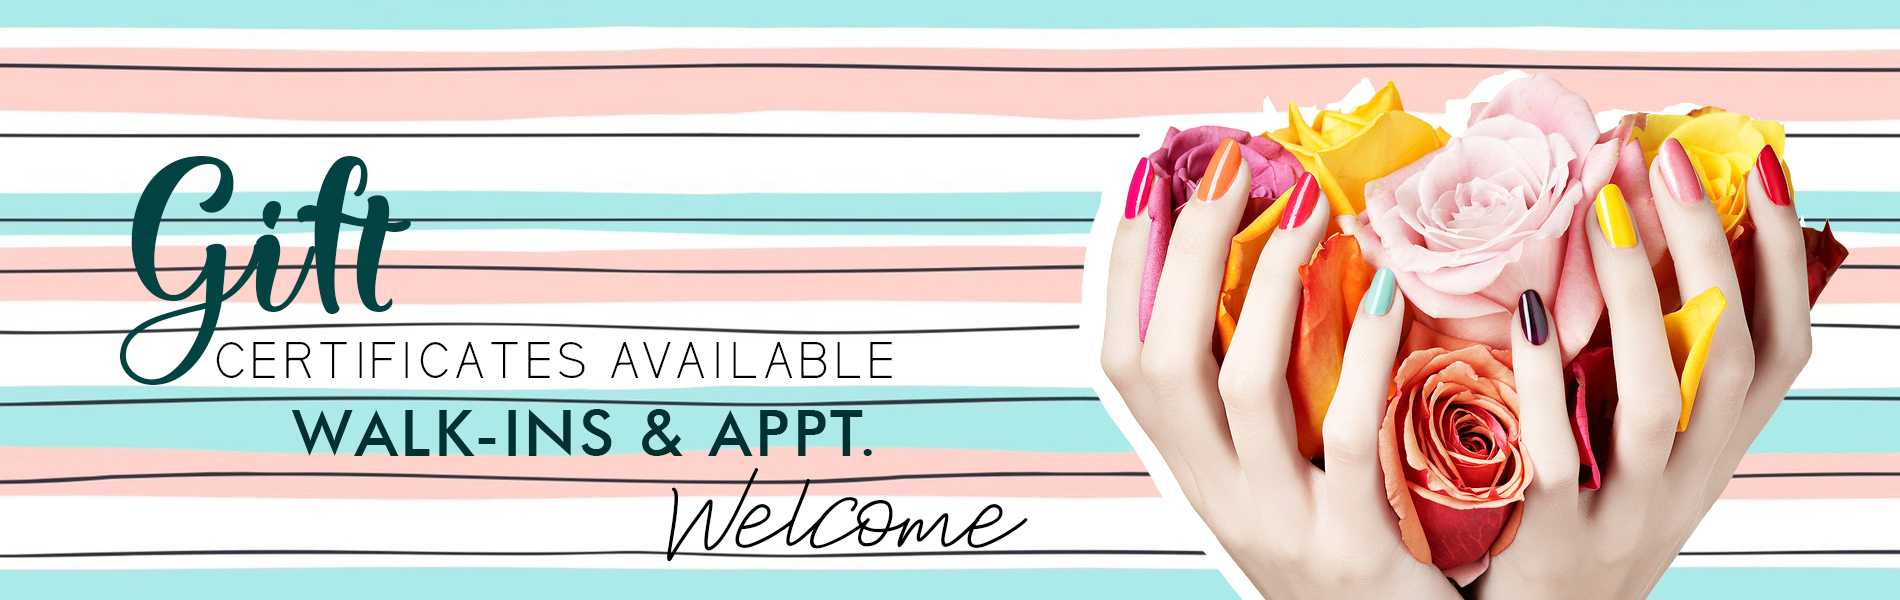 Nail Spa Near Me  Nails Saloon  Spa Manicure Services Onlne